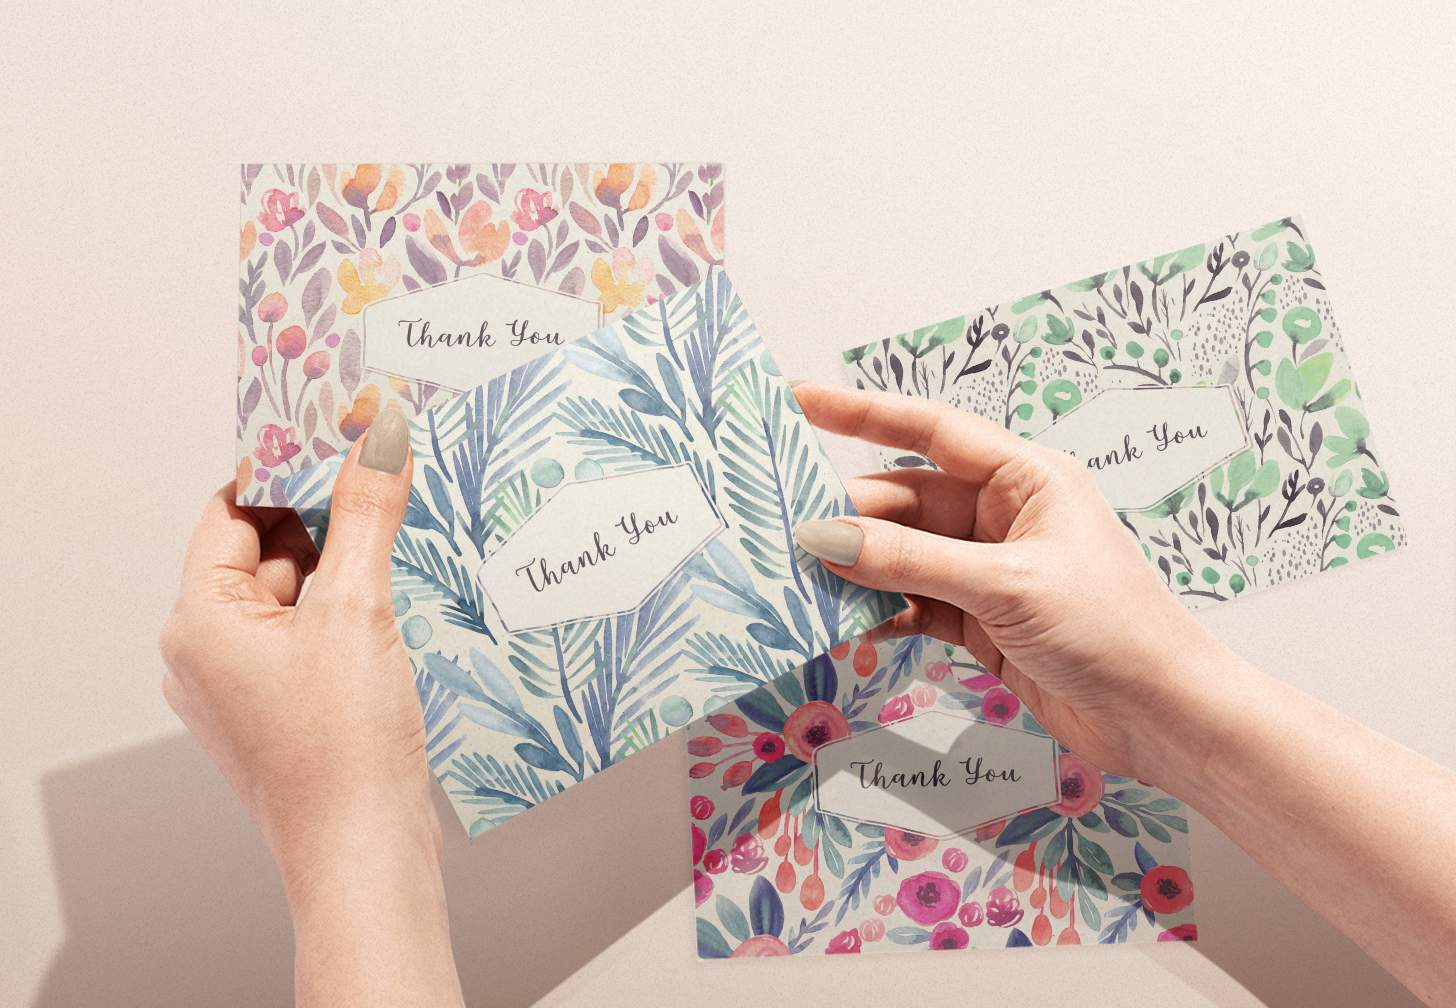 Hands holding four assorted cards with blue, green, pink, and rose color designs